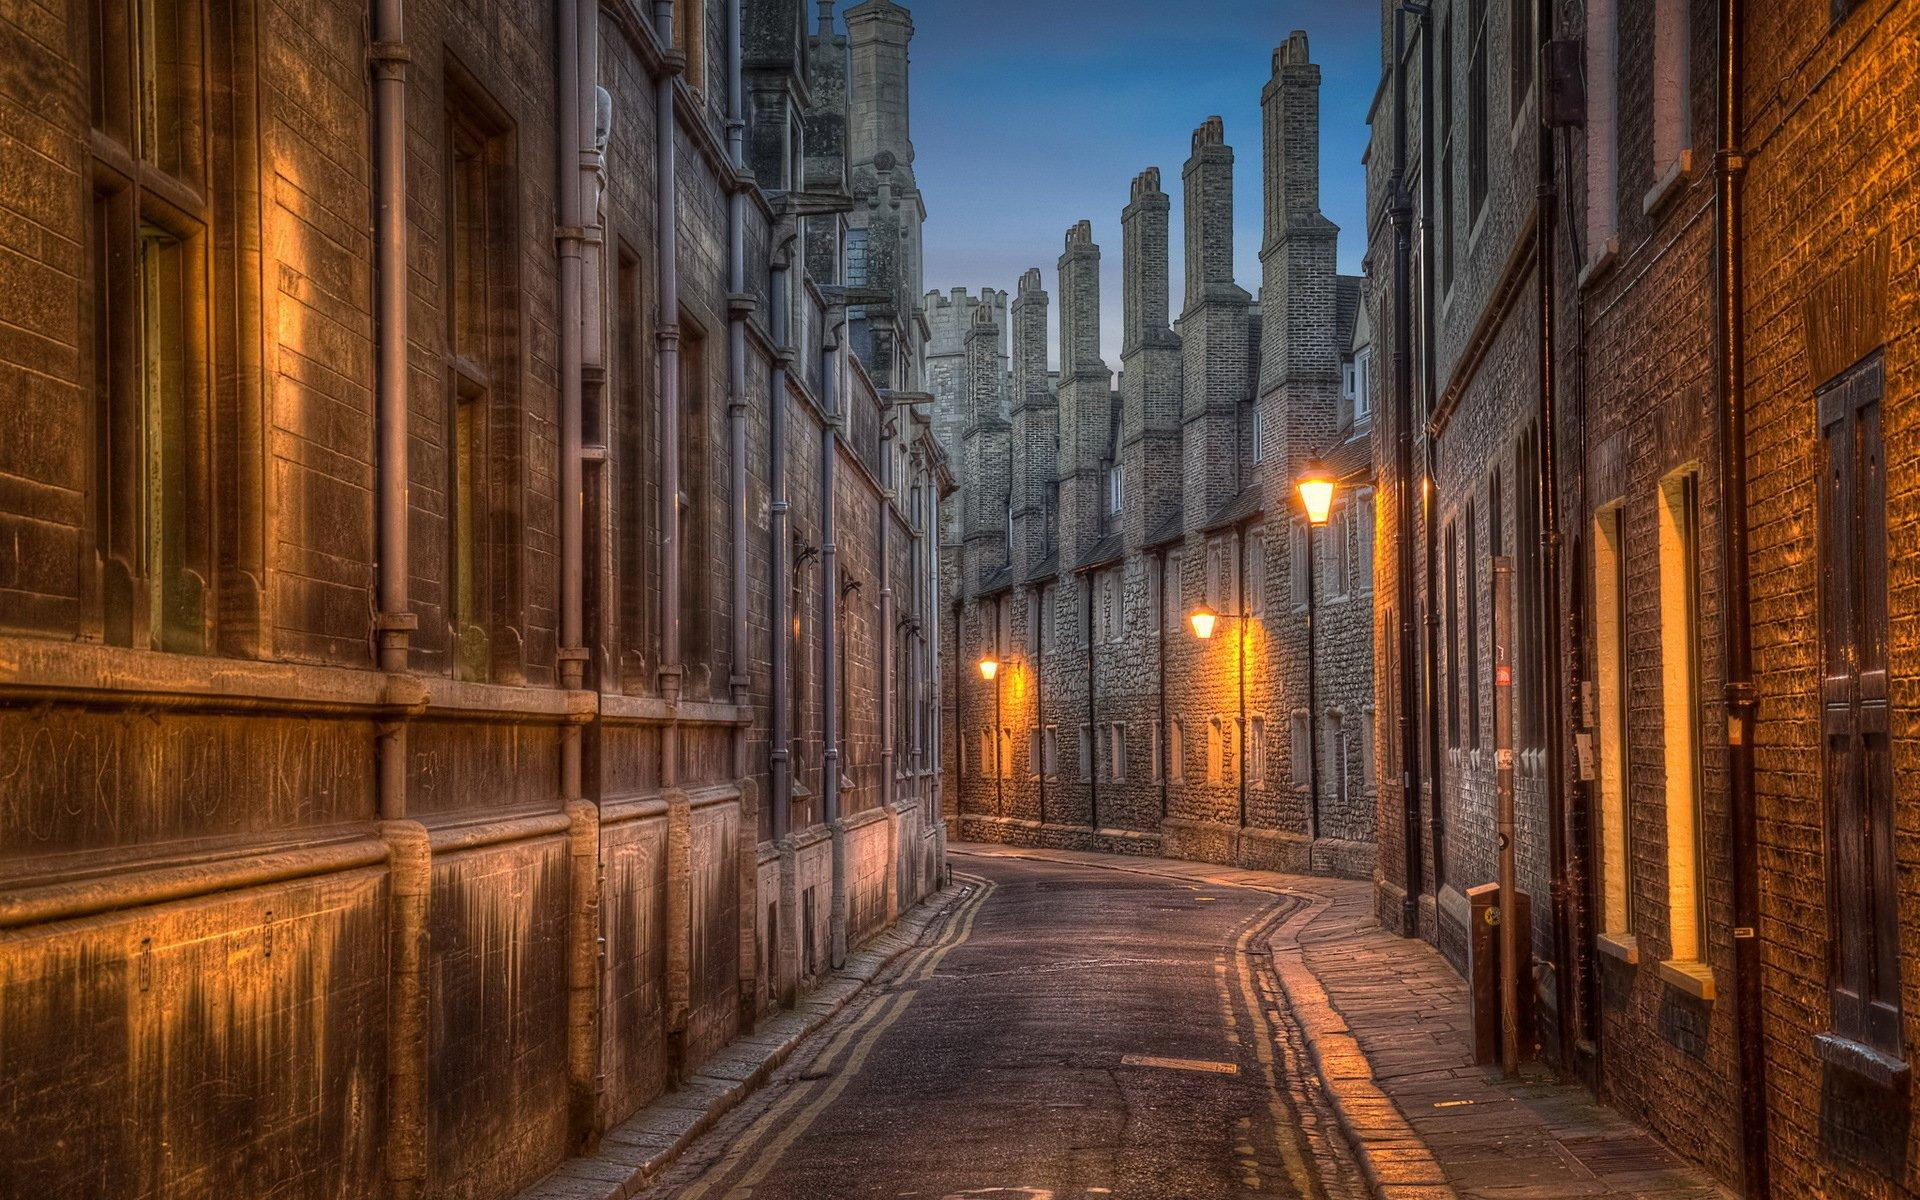 Trinity Lane, street in Cambridge HD Wallpapers